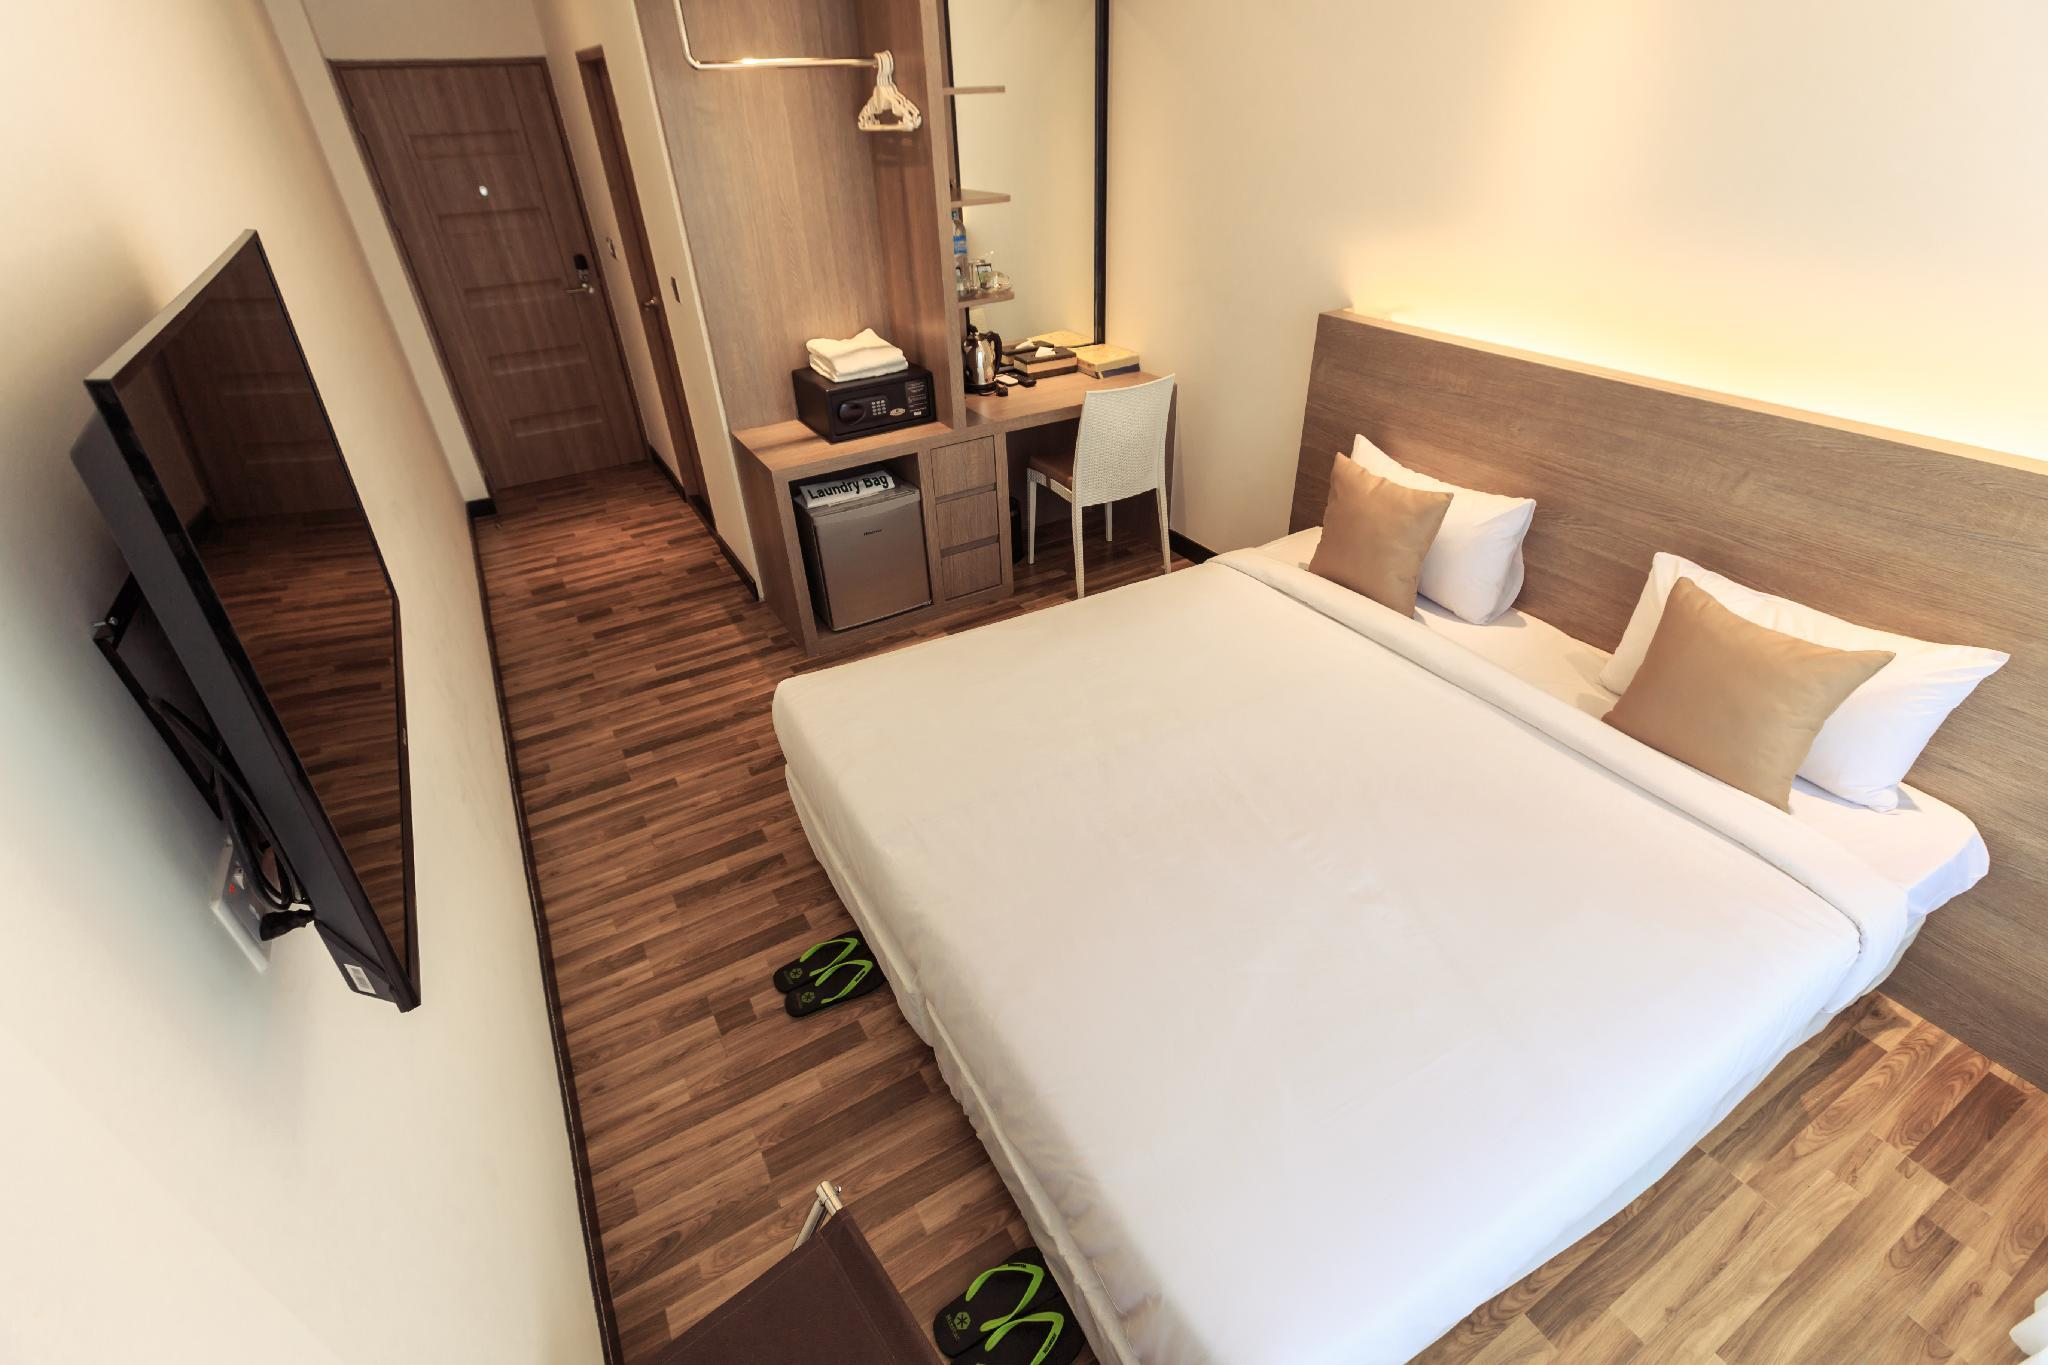 Premier Deluxe Room - Free Shared Kitchen and Laundry Access Included